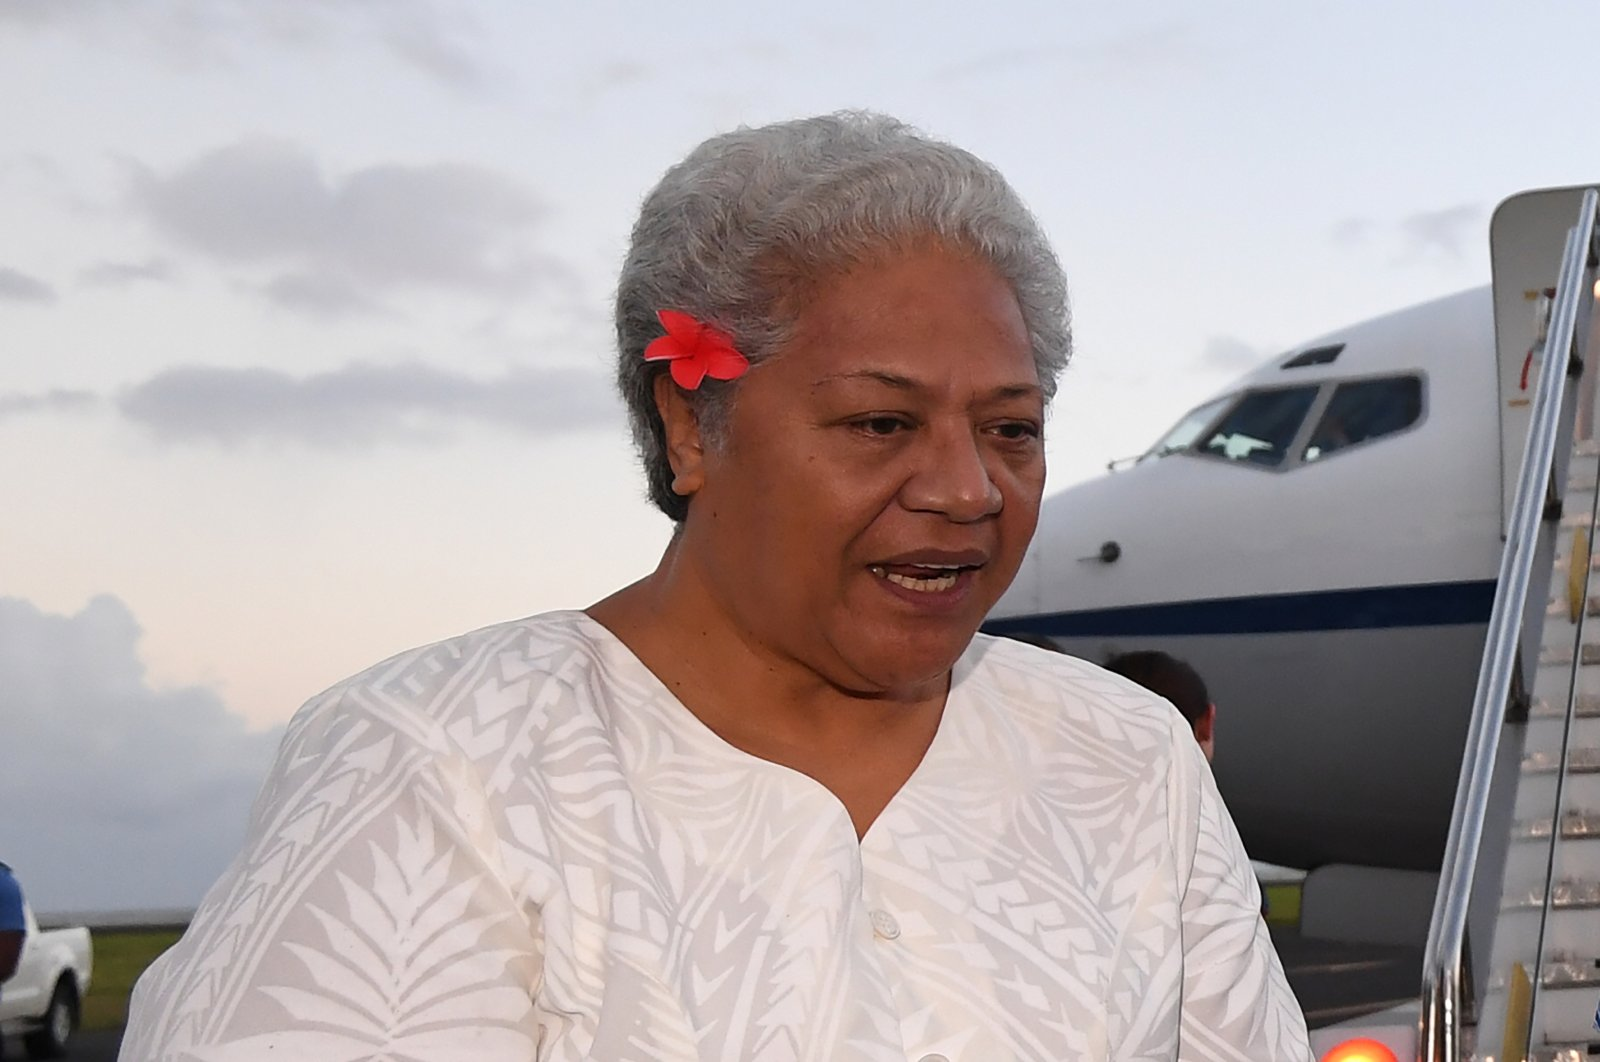 Then Deputy Prime Minister of Samoa Fiame Naomi Mata'afa speaks with Australian Prime Minister Malcolm Turnbull and the Australian High Commissioner to Samoa Sue Langford as they arrive at Faleolo Airport in Apia, Samoa on Sept. 8, 2017. (AP Photo)